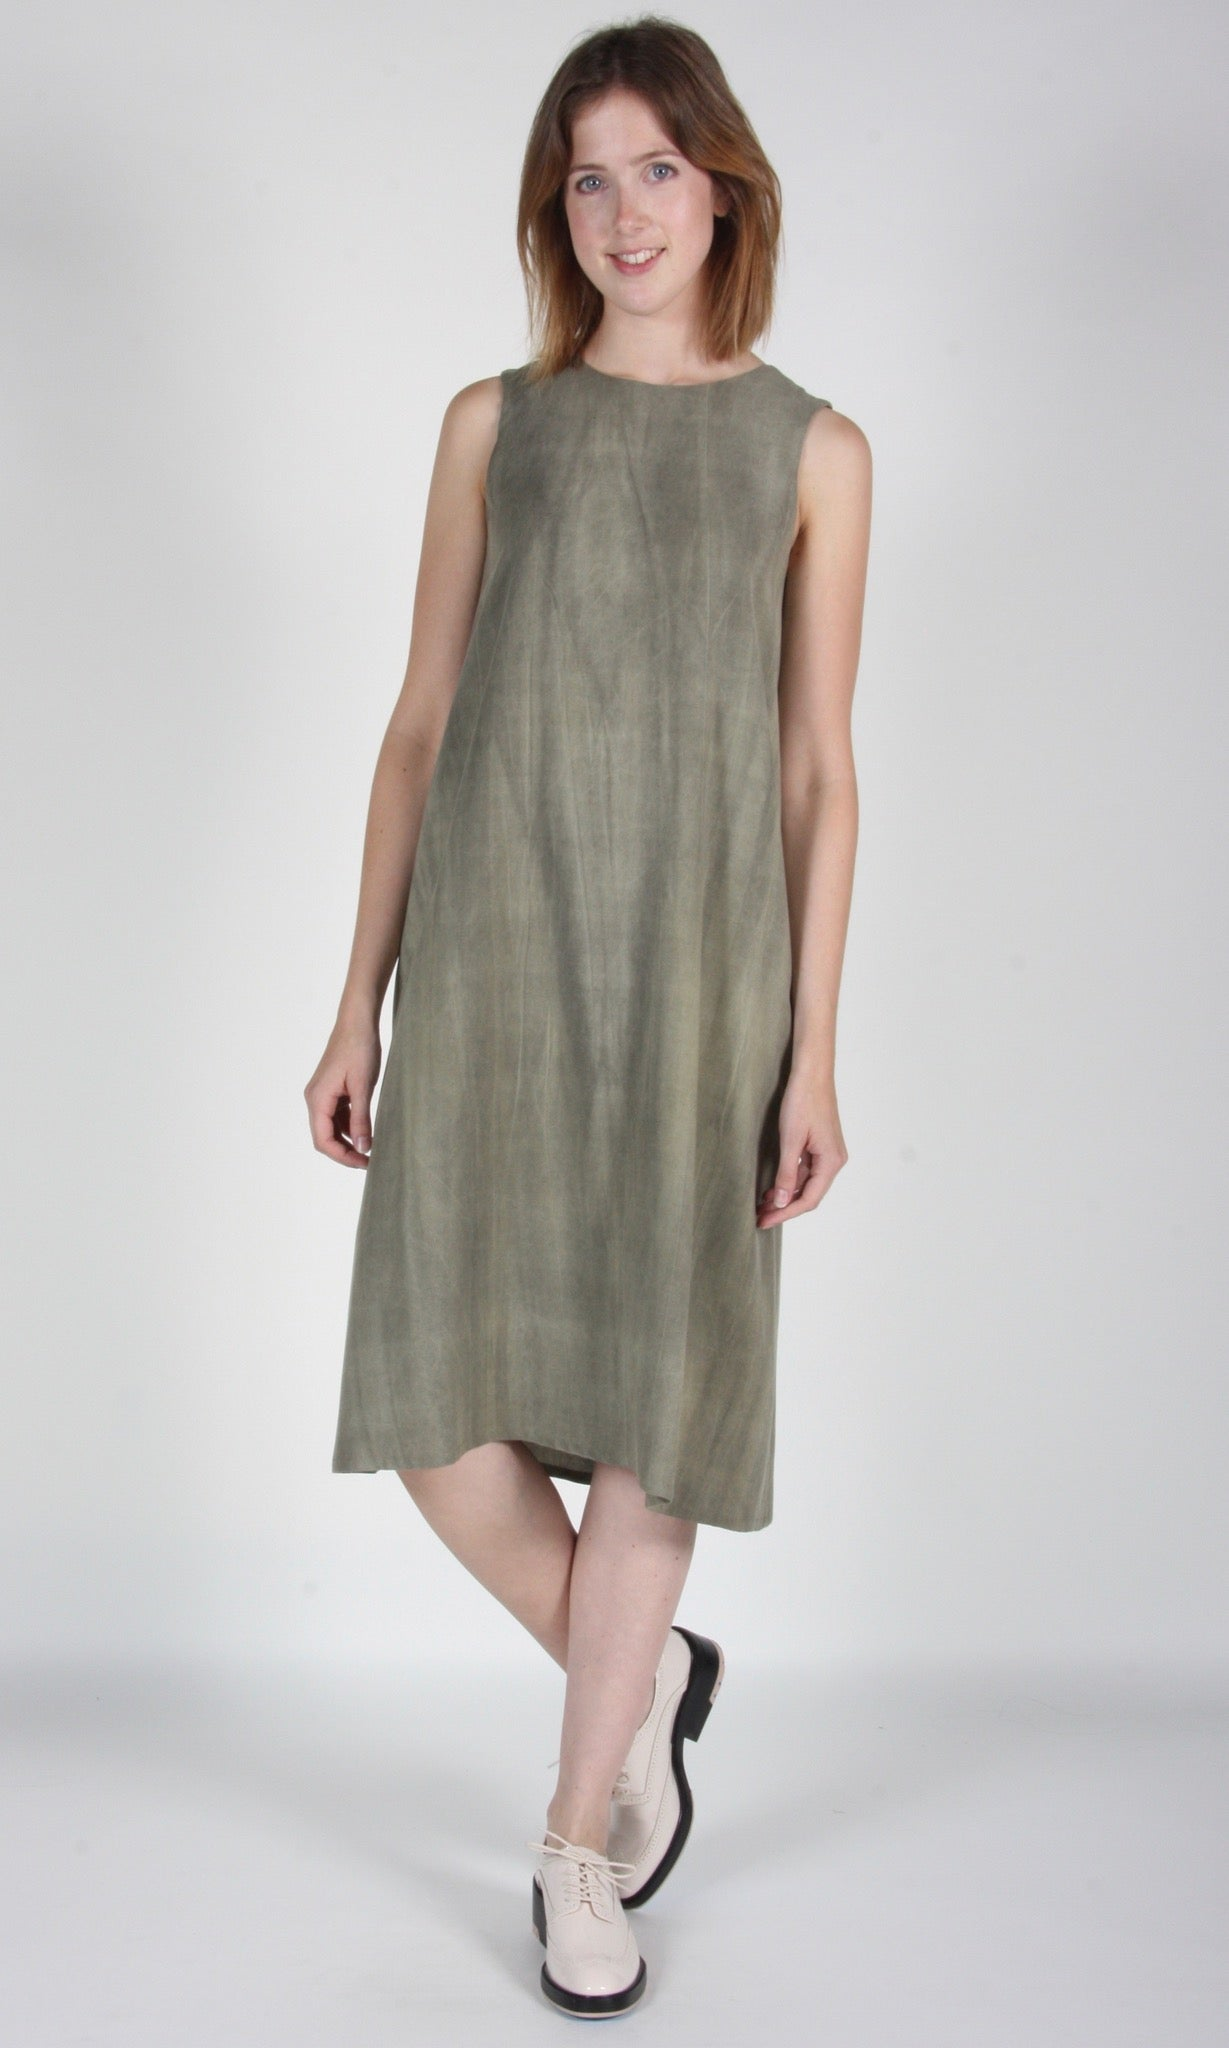 Blossomcrown Dress - Sand Washed Olive